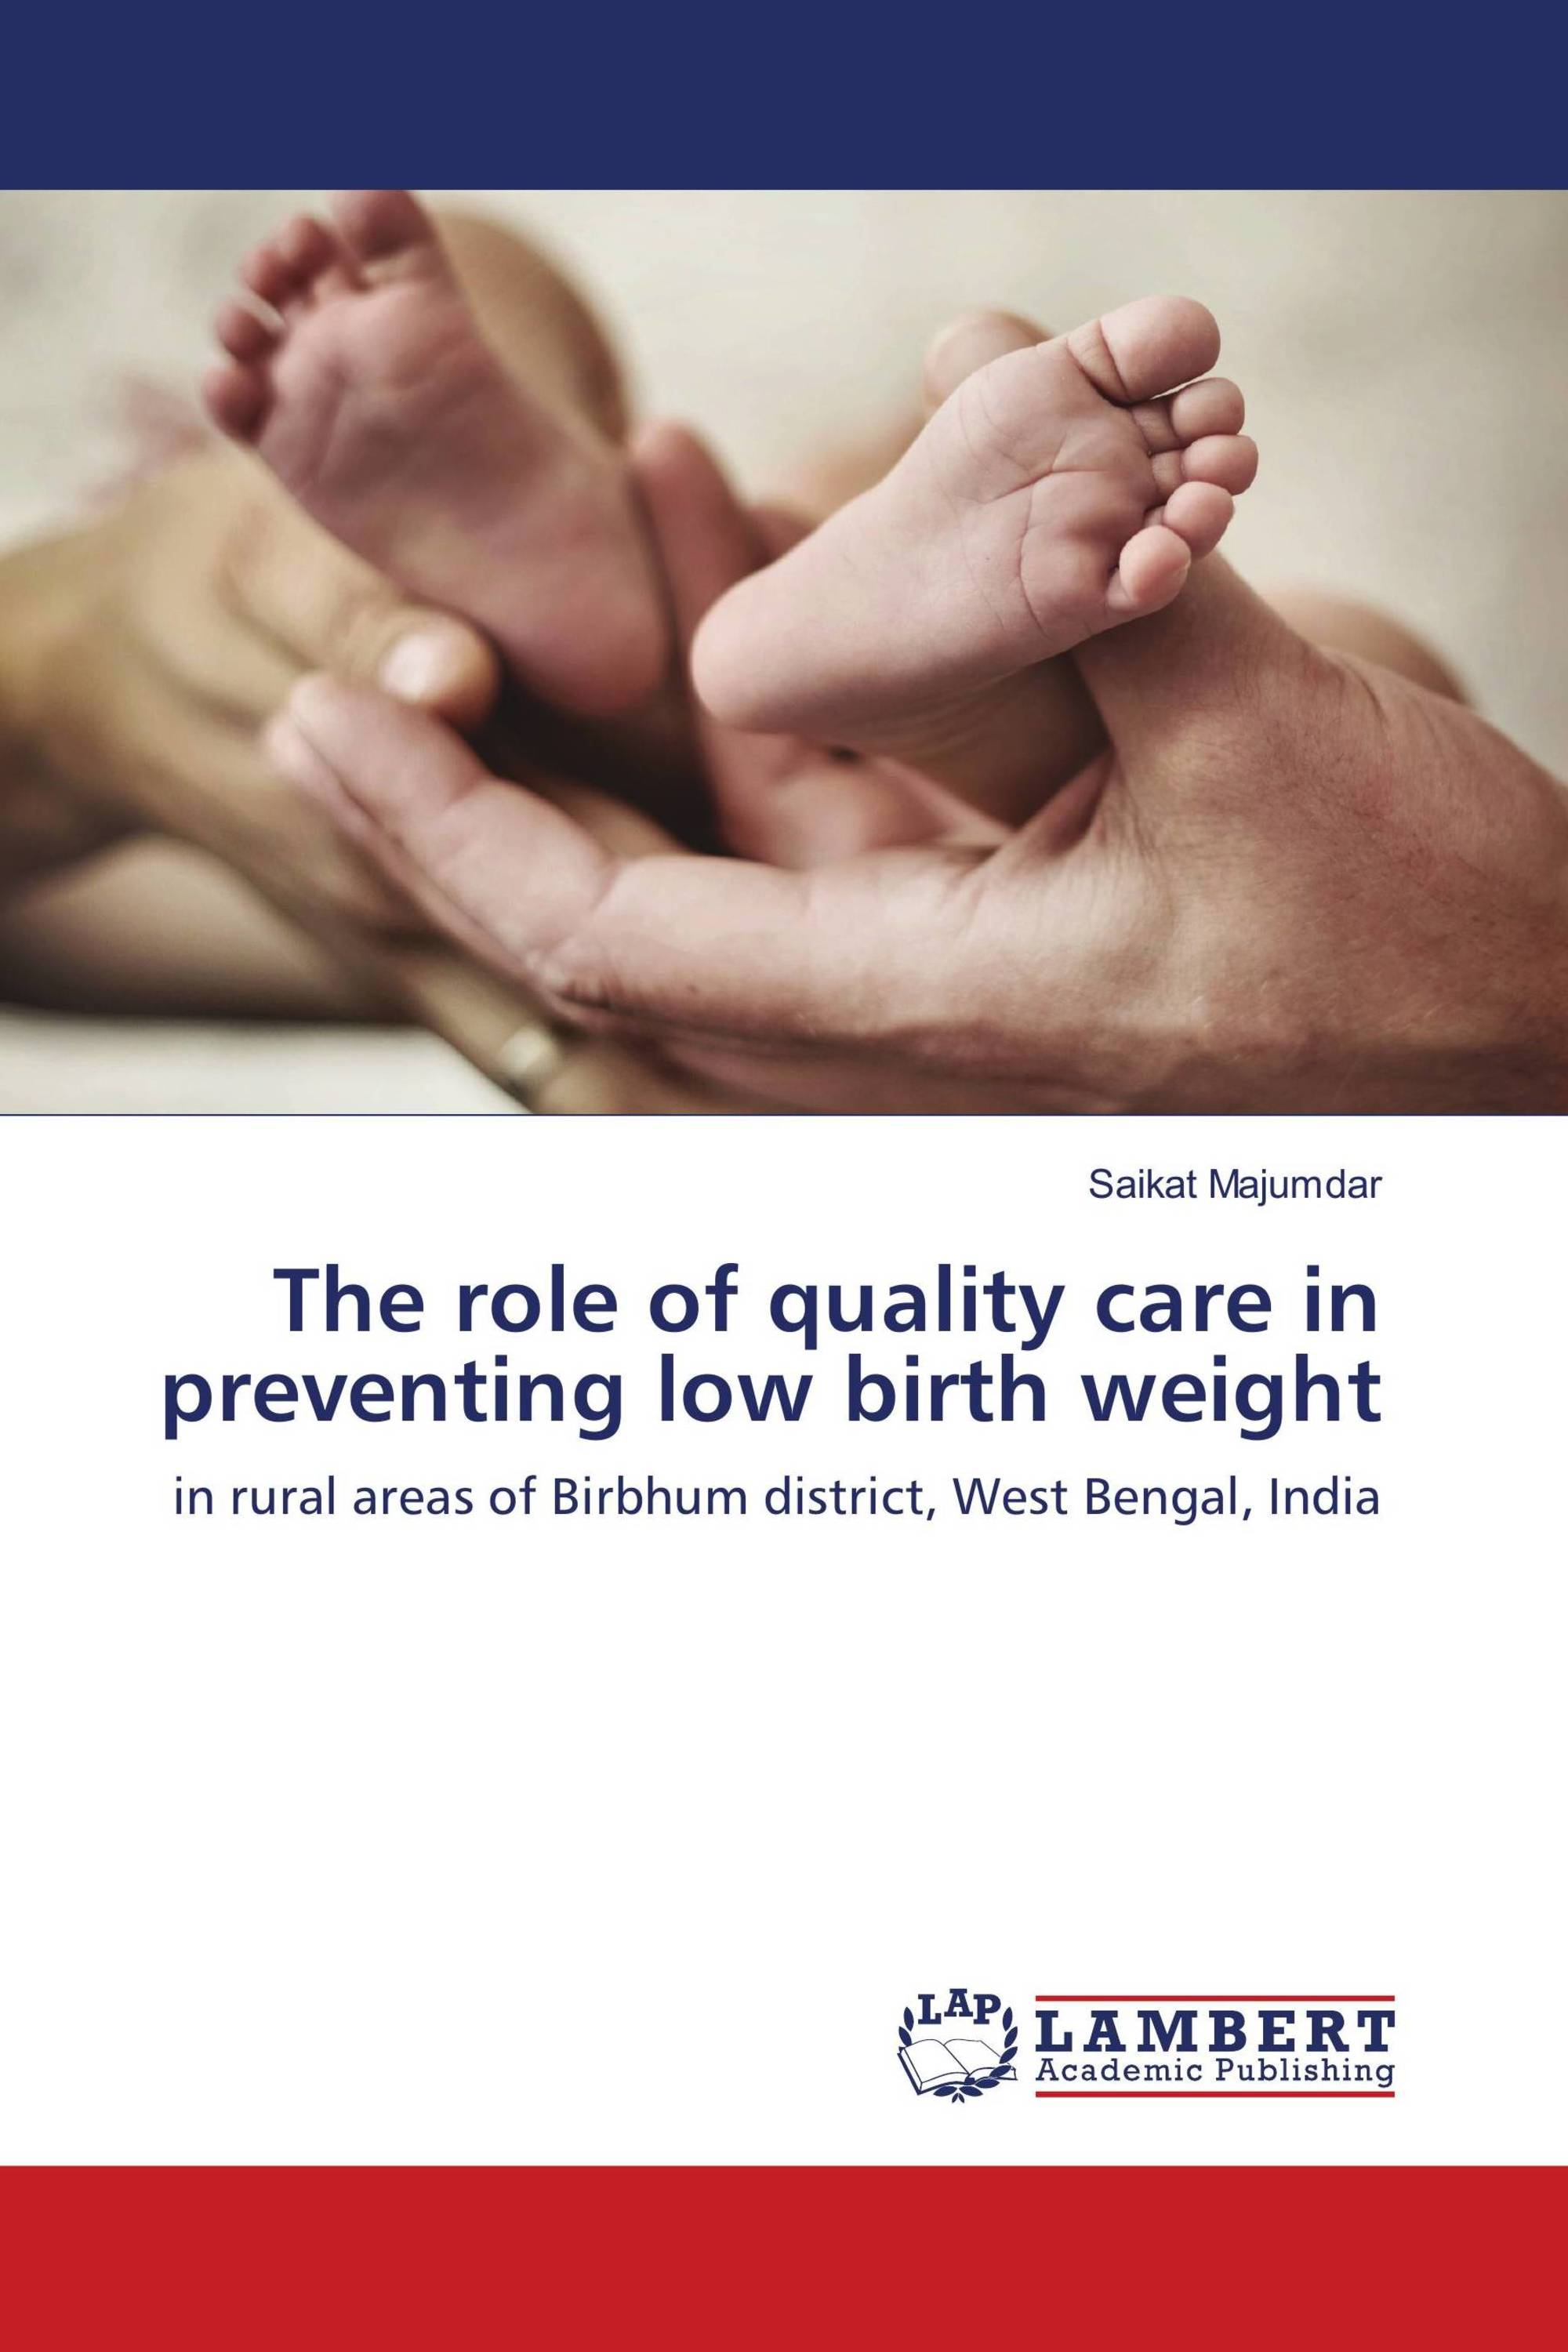 The role of quality care in preventing low birth weight